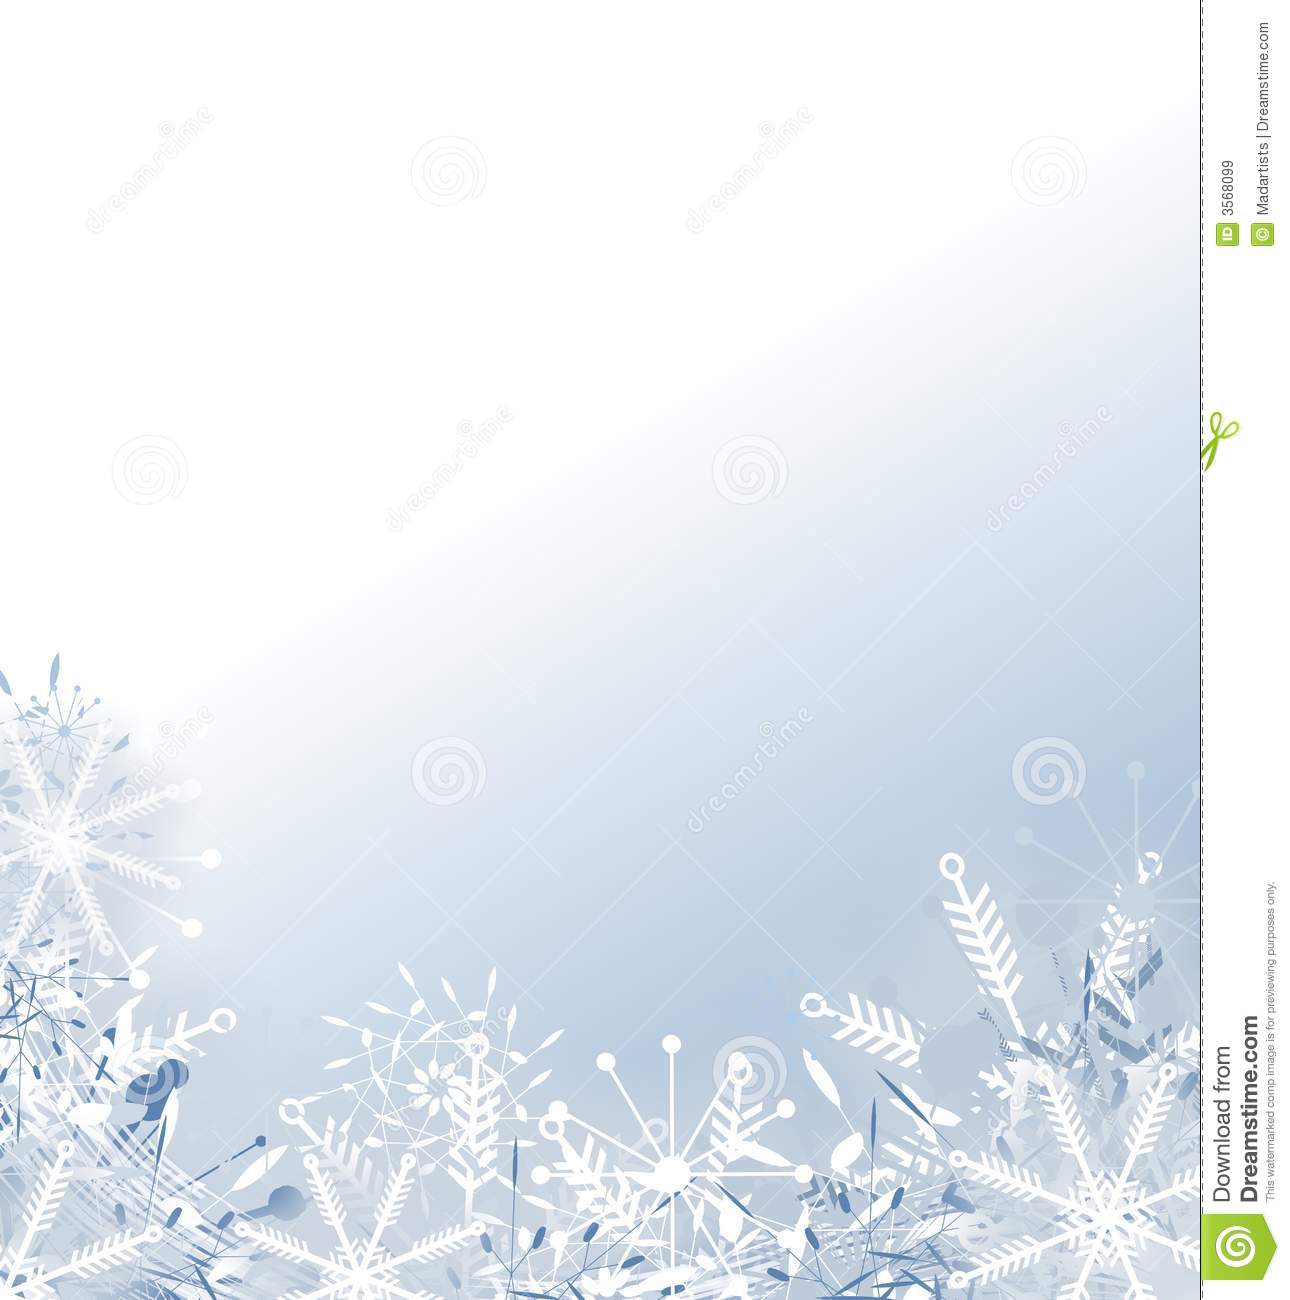 Faded Snowflake Background Royalty Free Stock Images - Image: 3568099